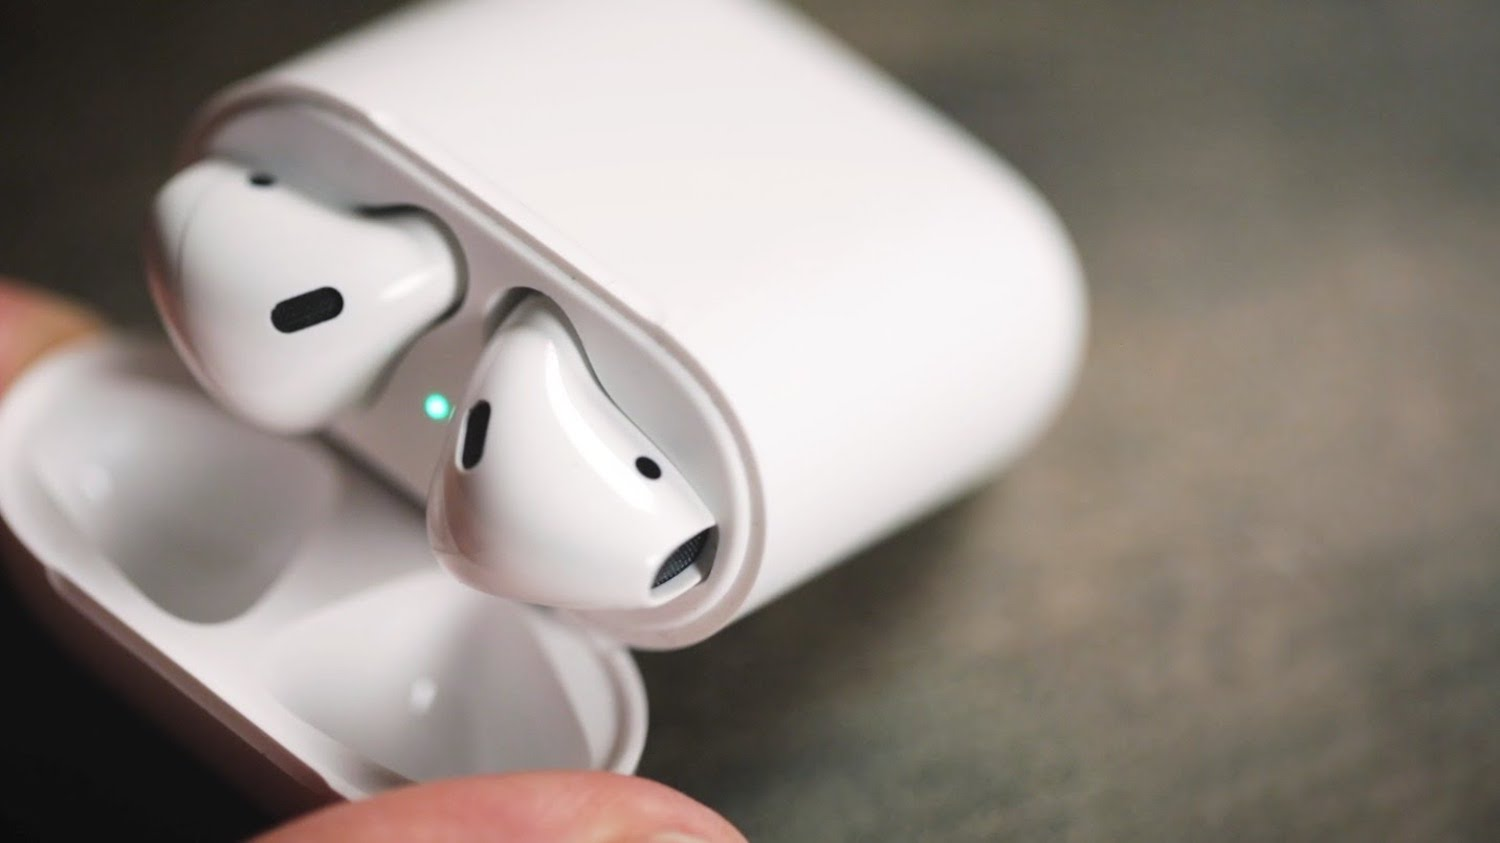 AirPods — the biggest failure of Apple this year?